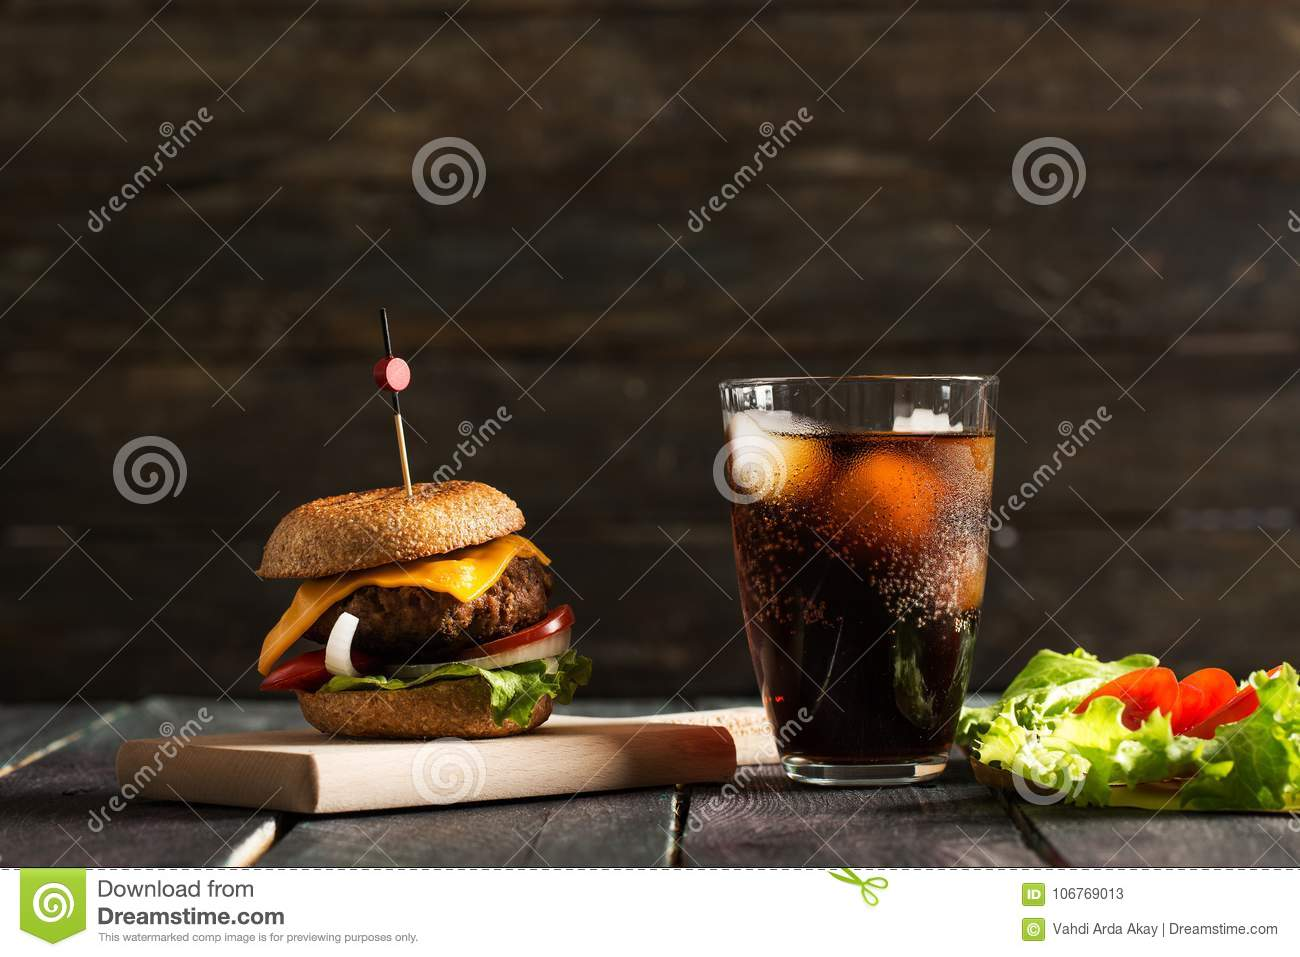 Homemade Hamburger on Wooden Background